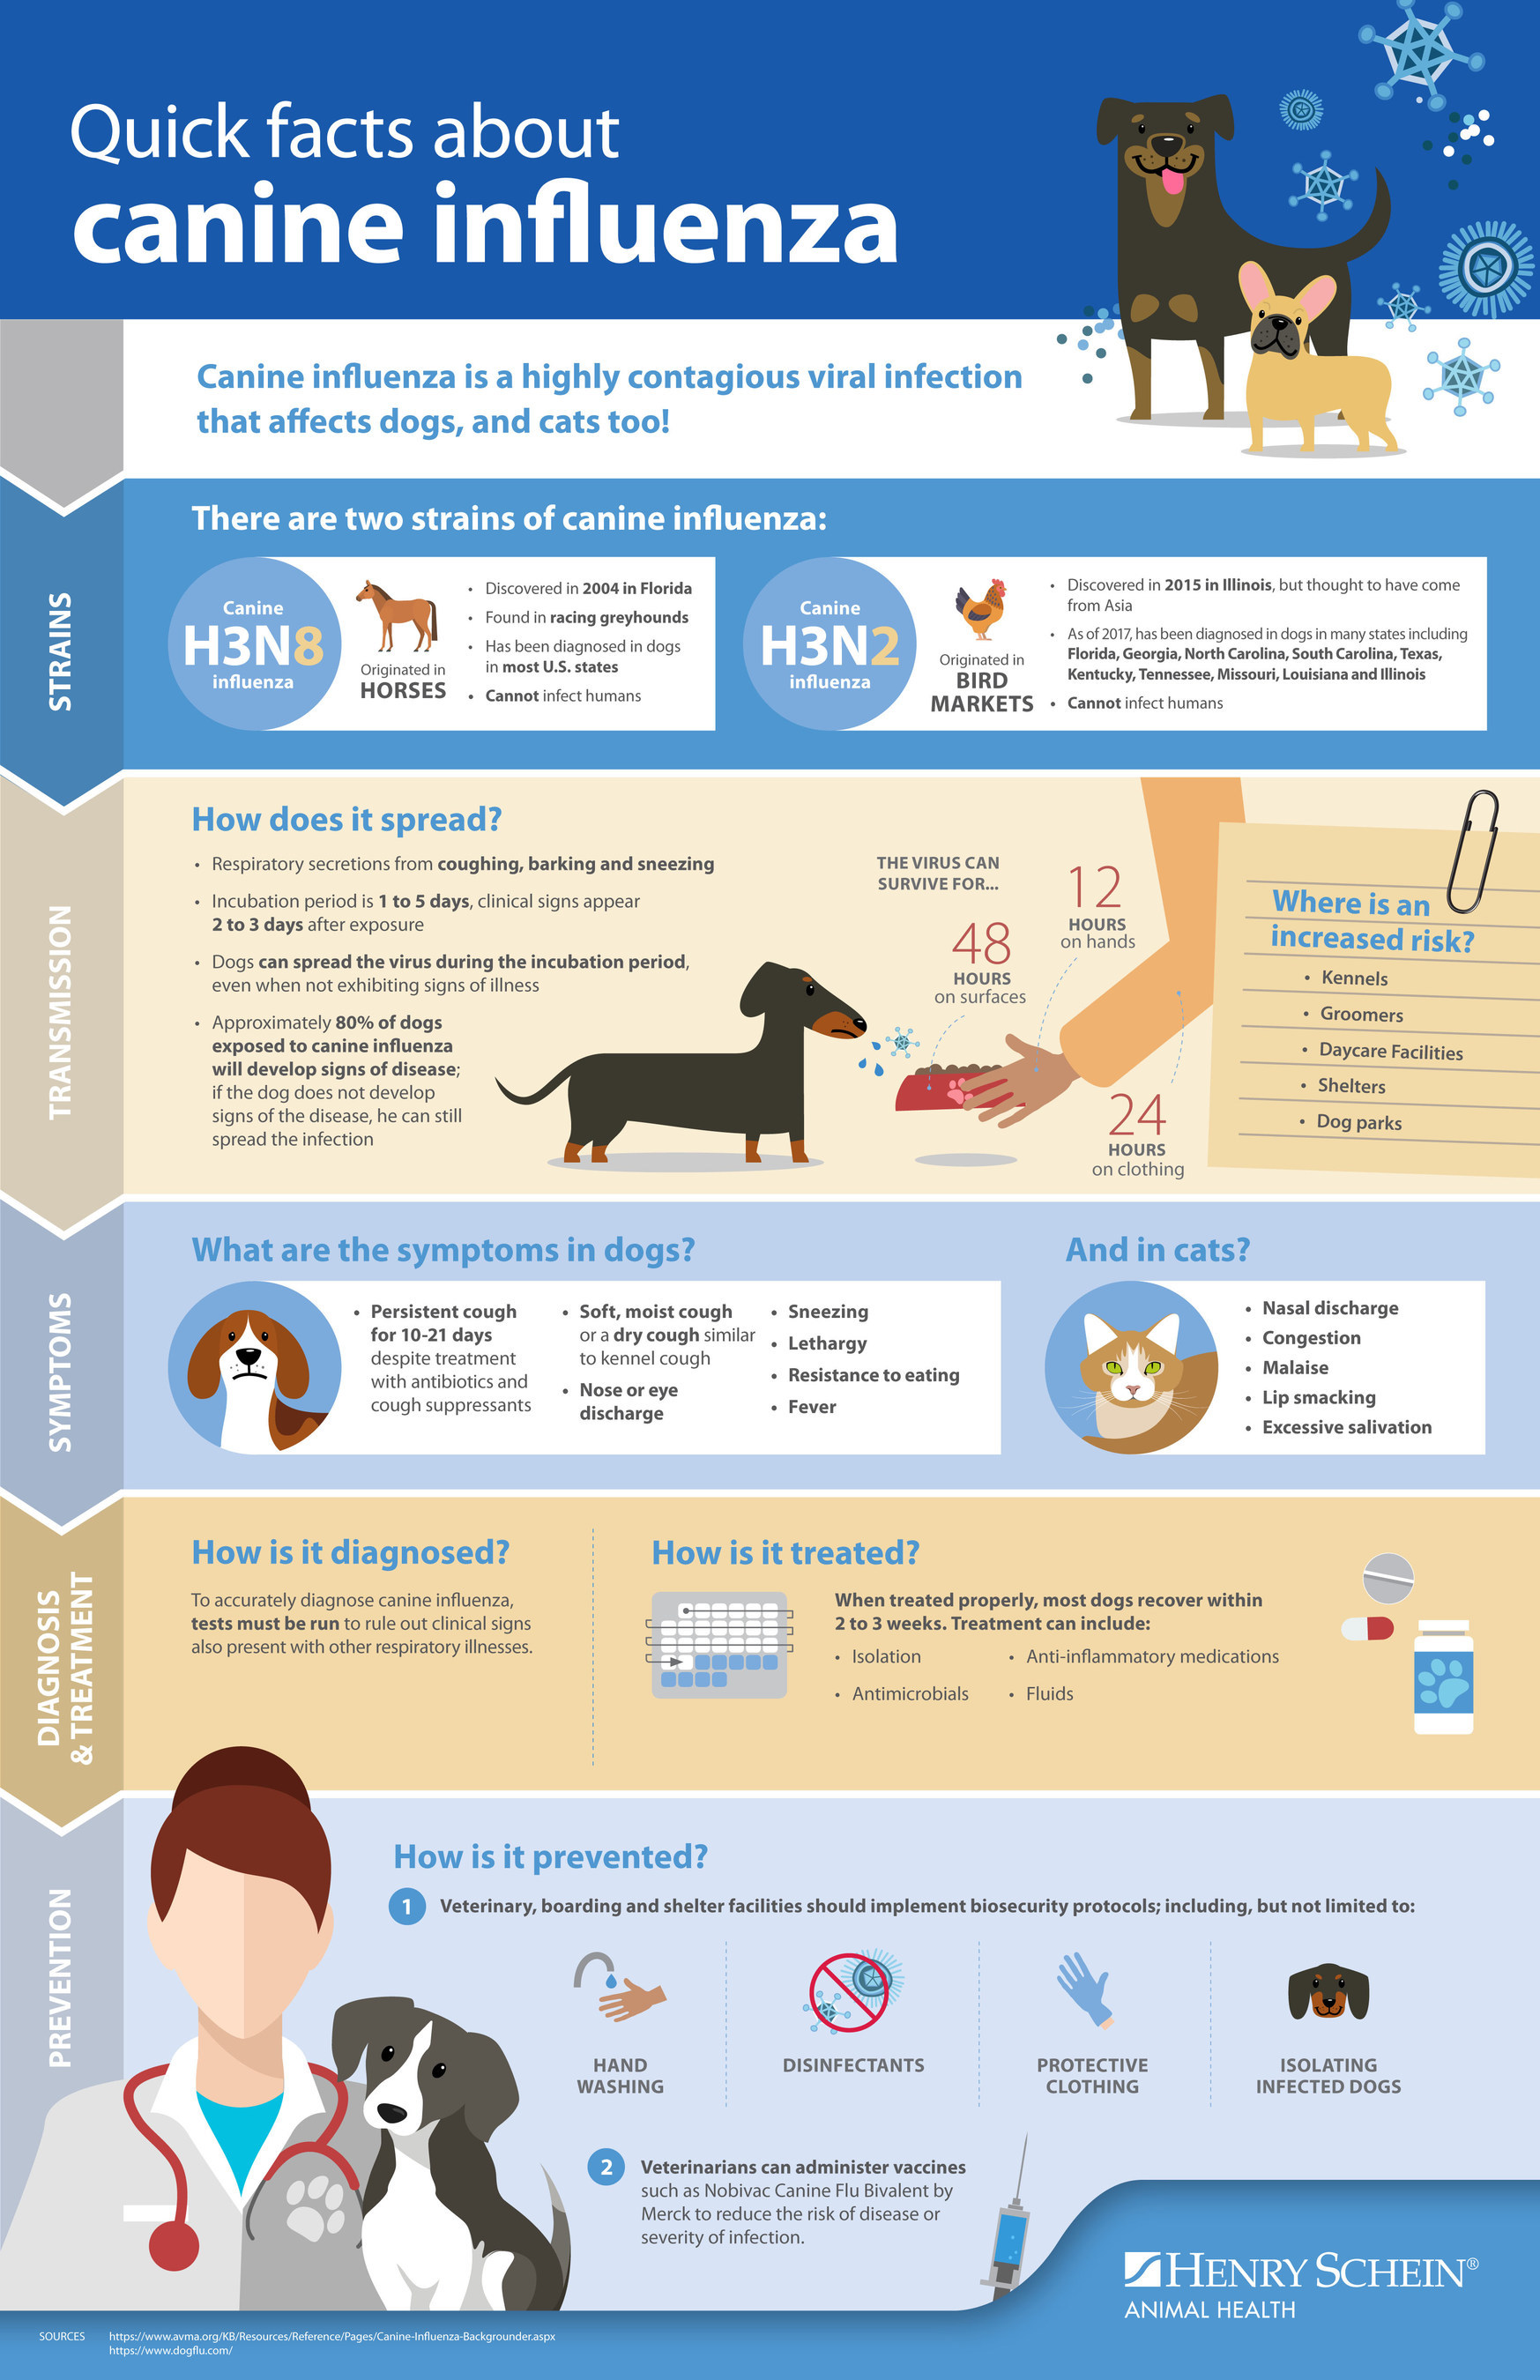 Henry Schein Animal Health's web-based Canine Influenza Resource Center helps raise awareness of the disease and promotes prevention amid outbreaks.